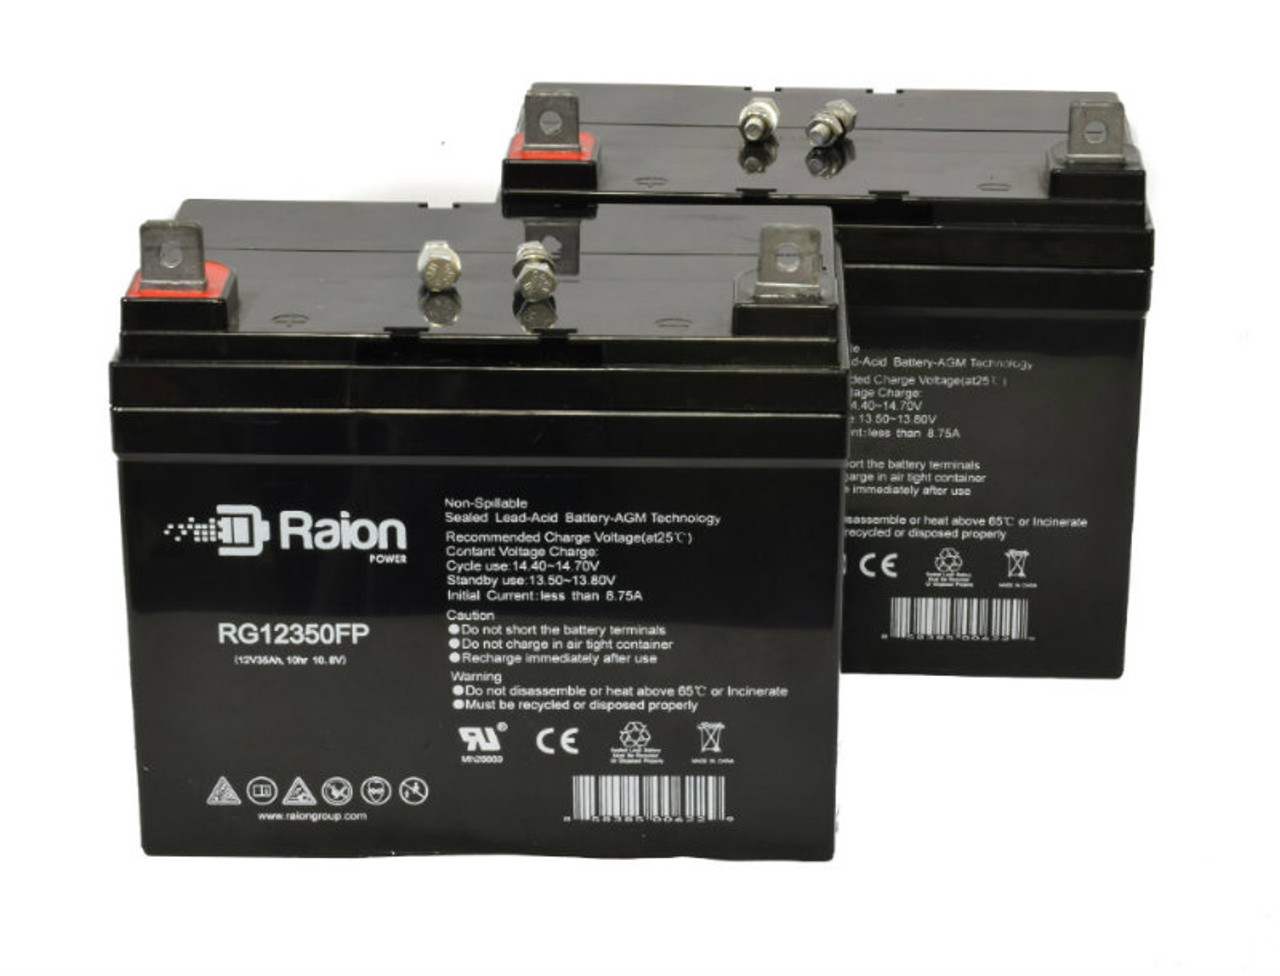 Raion Power RG12350FP Replacement Wheelchair Battery For Access Point Medical AXS7000 (2 Pack)